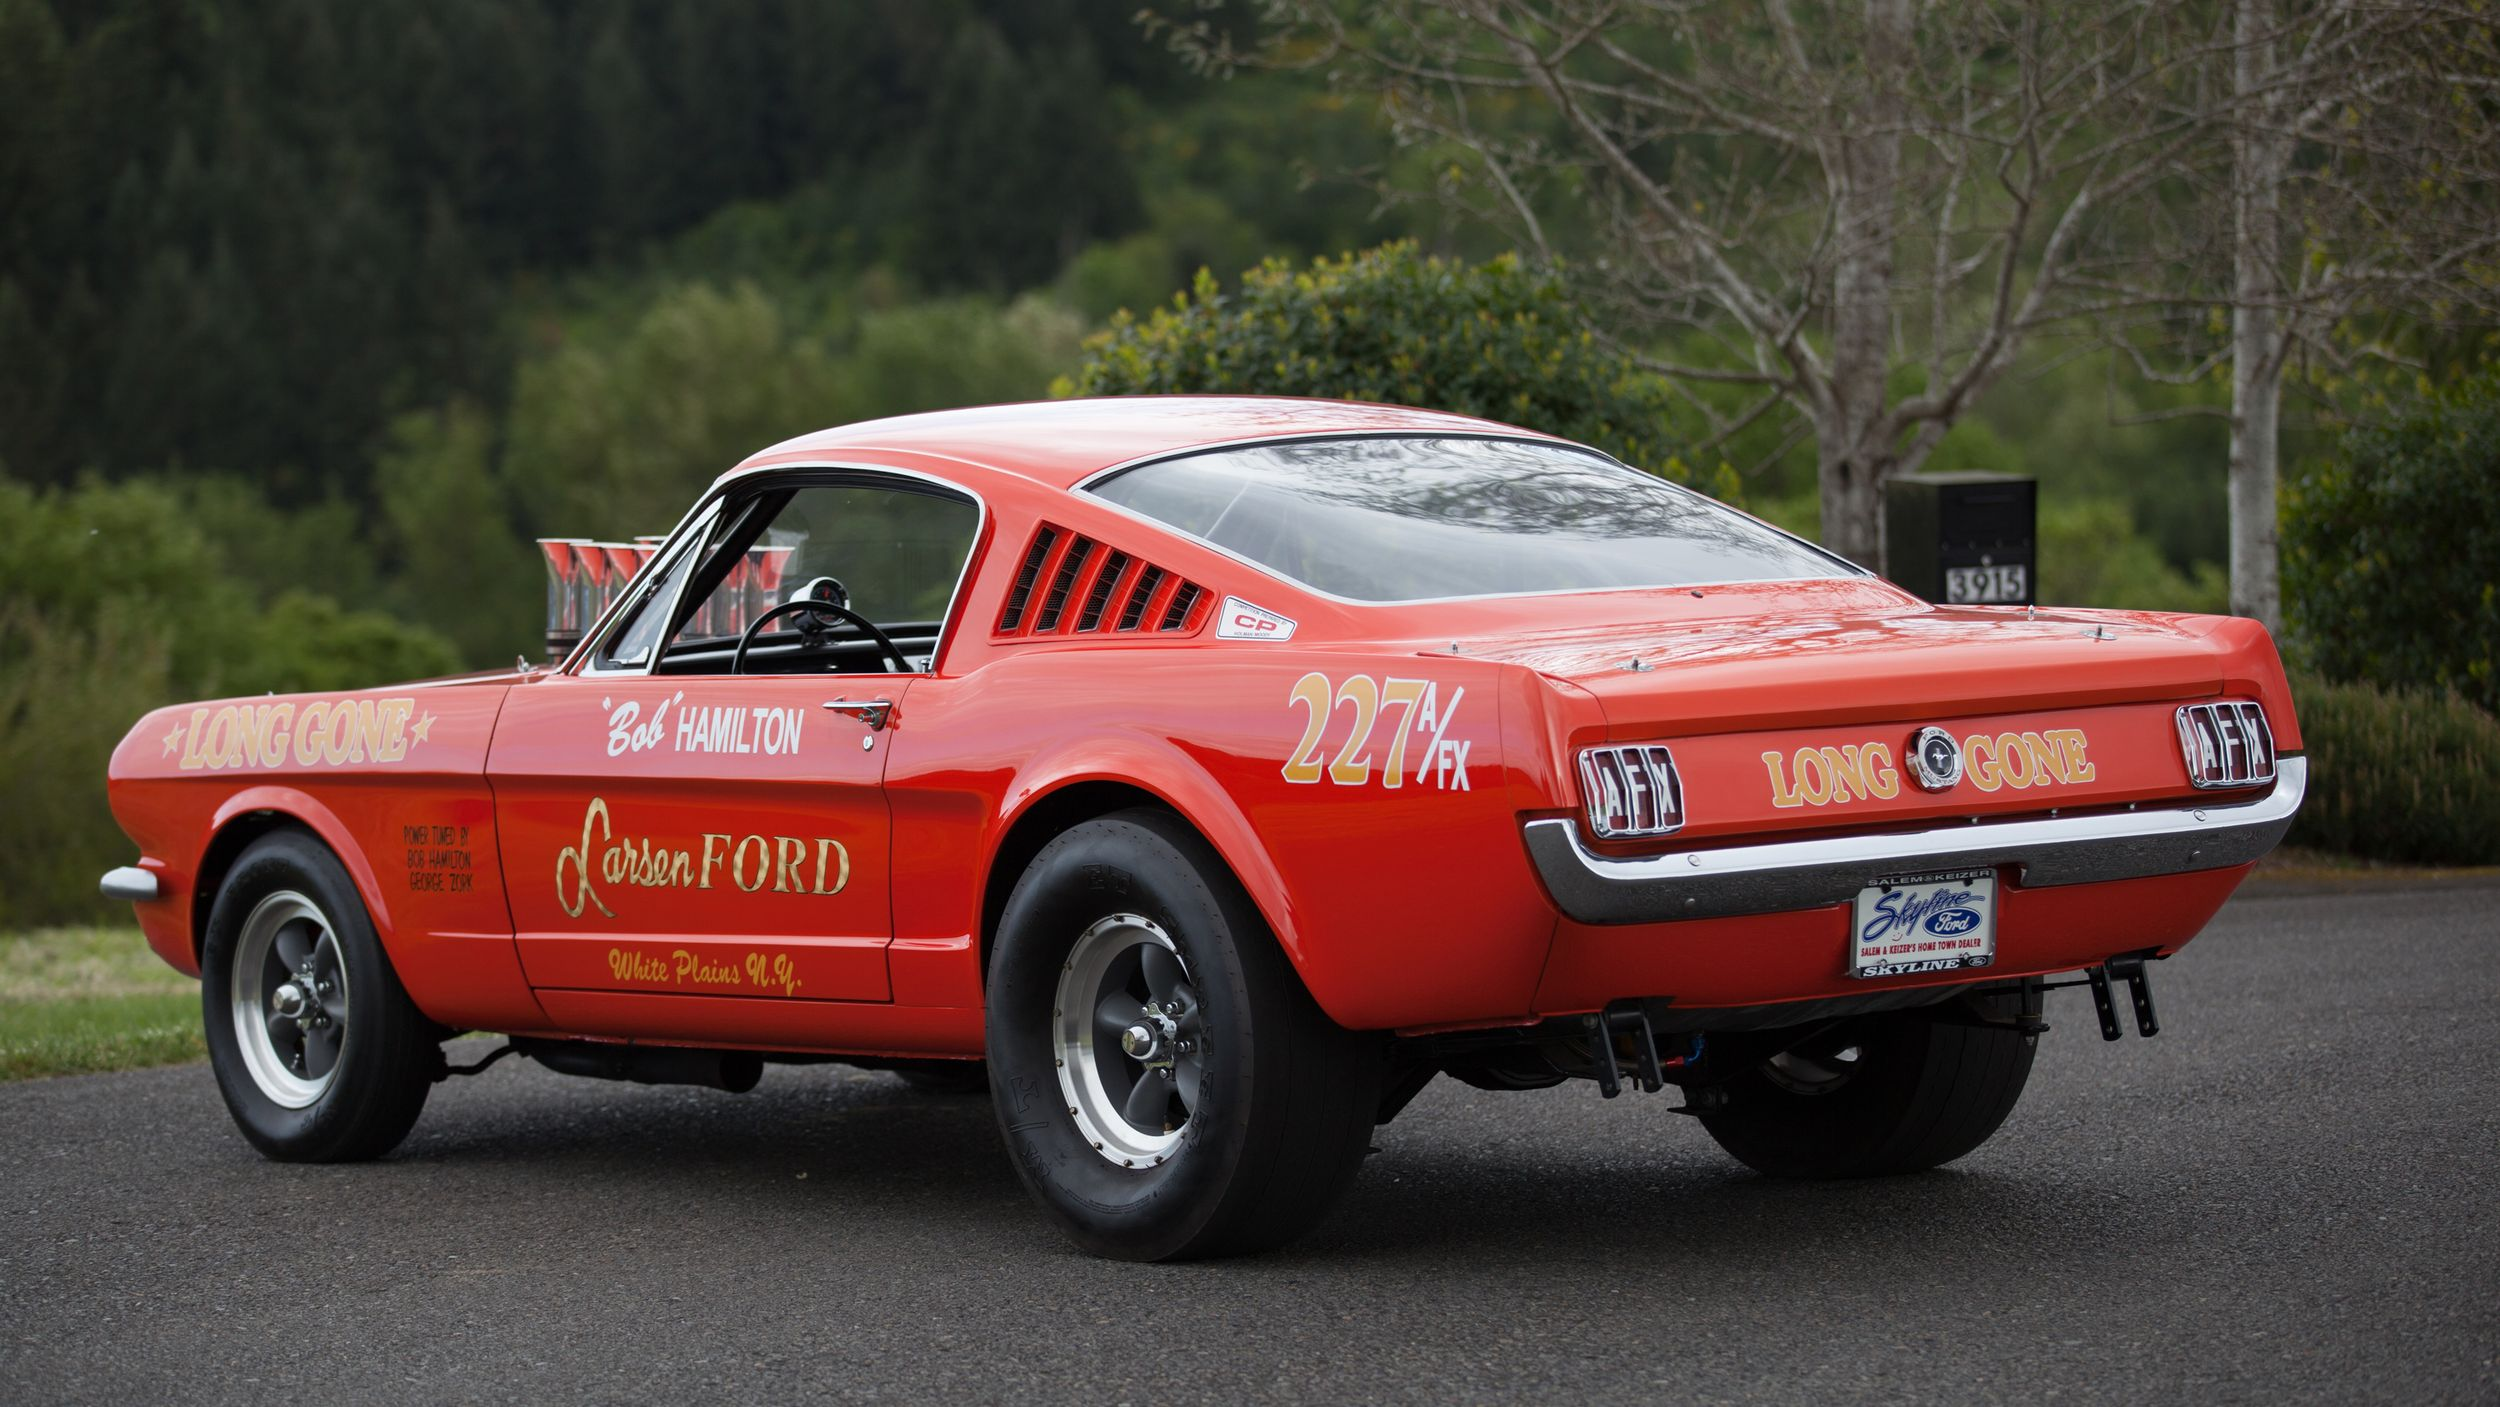 65 Mustang Pro Touring >> Rare Mustangs: The 1965 A/FX Factory Drag Car – AmericanMuscle.com Blog